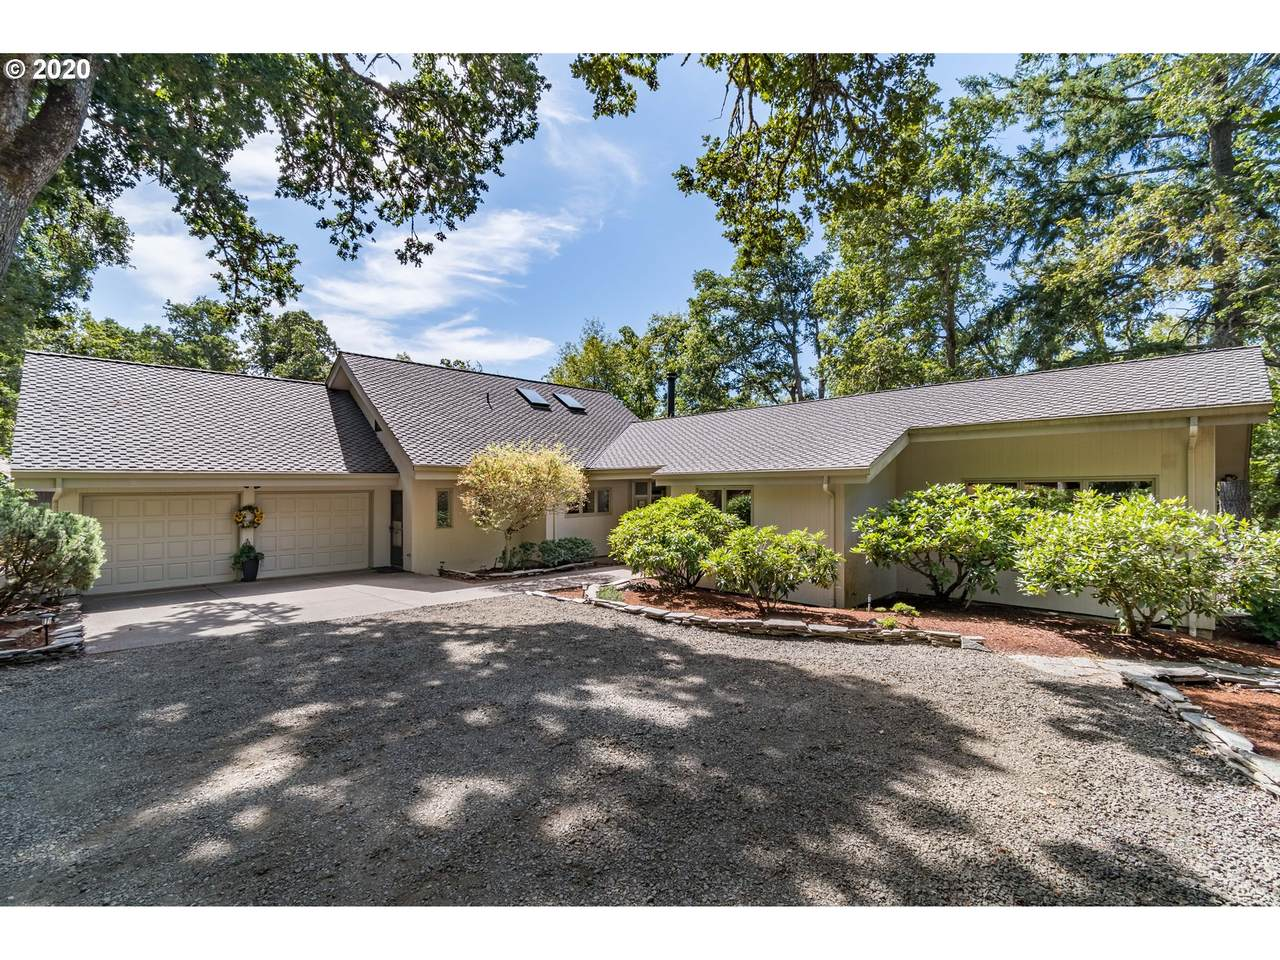 28199 Cantrell Rd - Photo 1